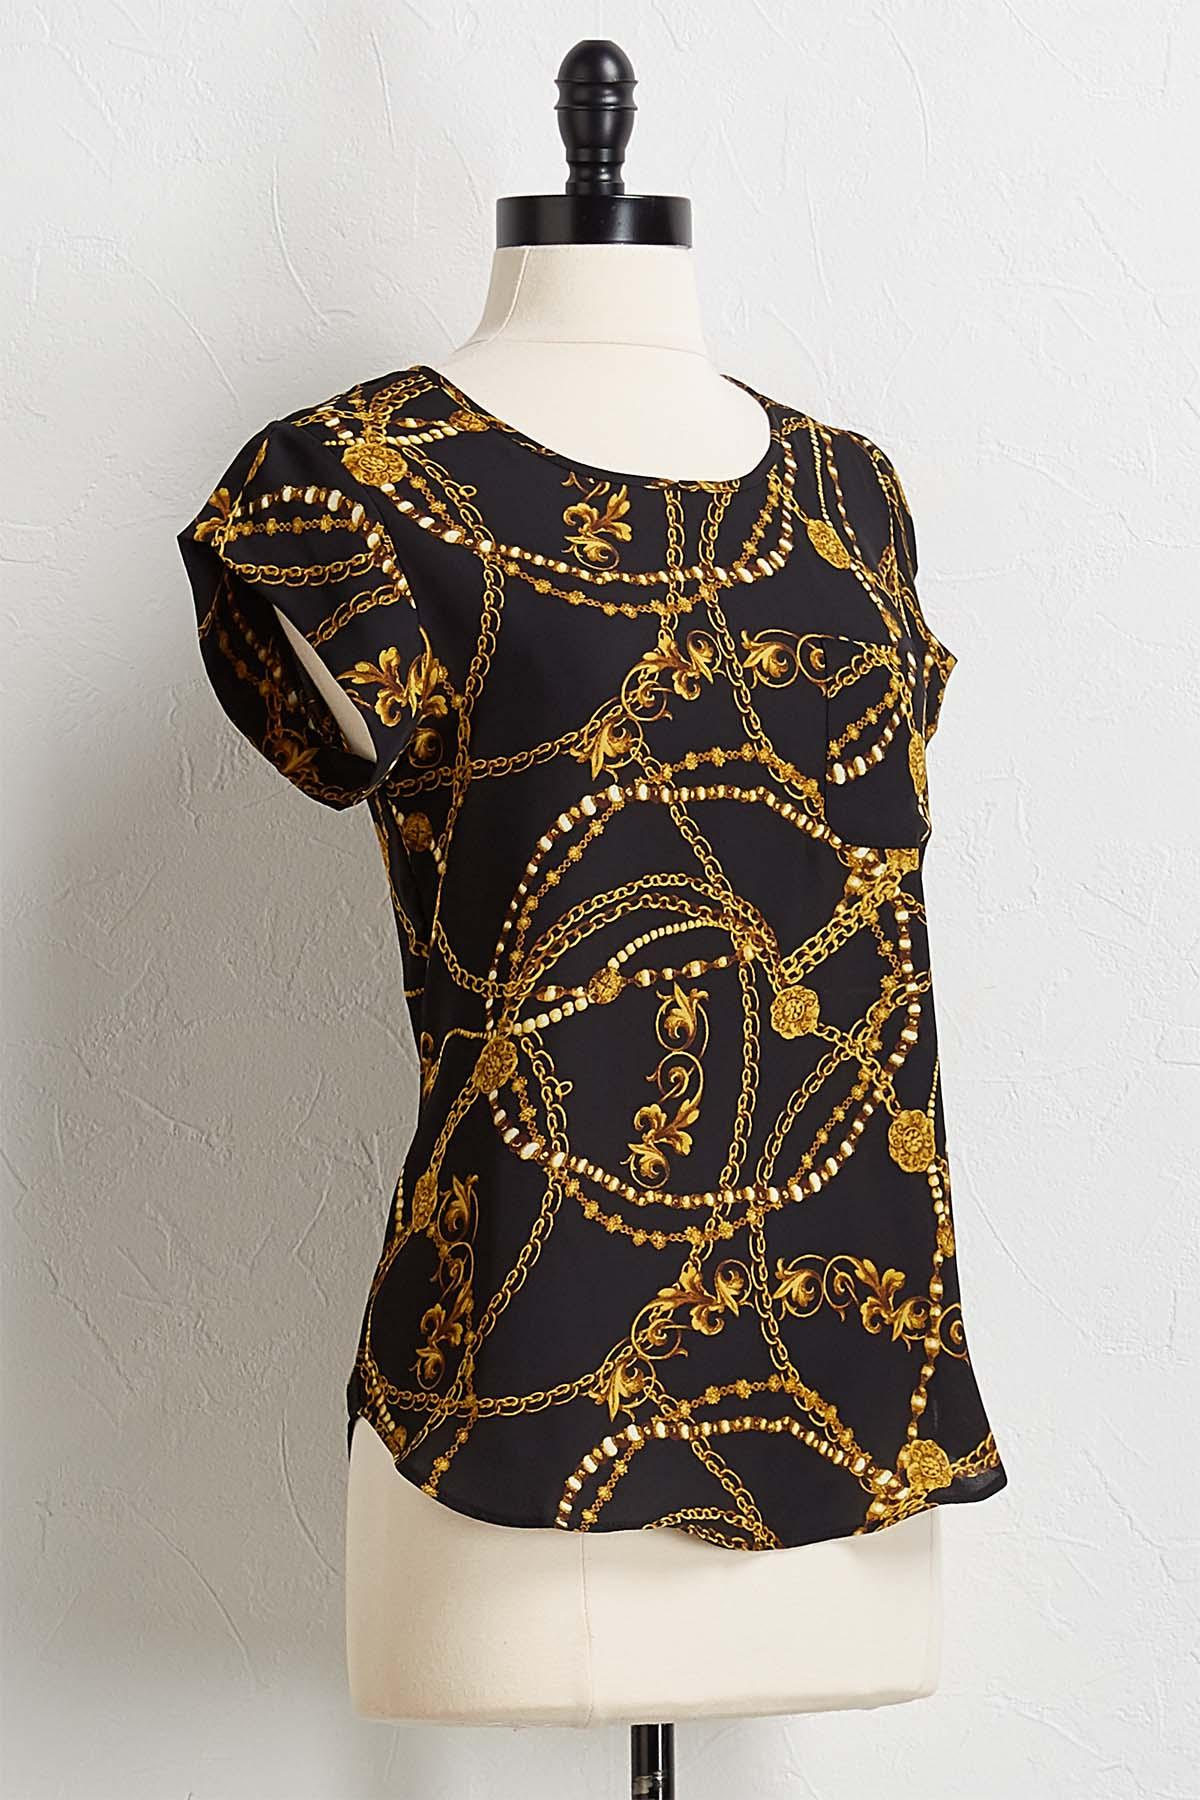 Gold Jewel Print Pullover Top